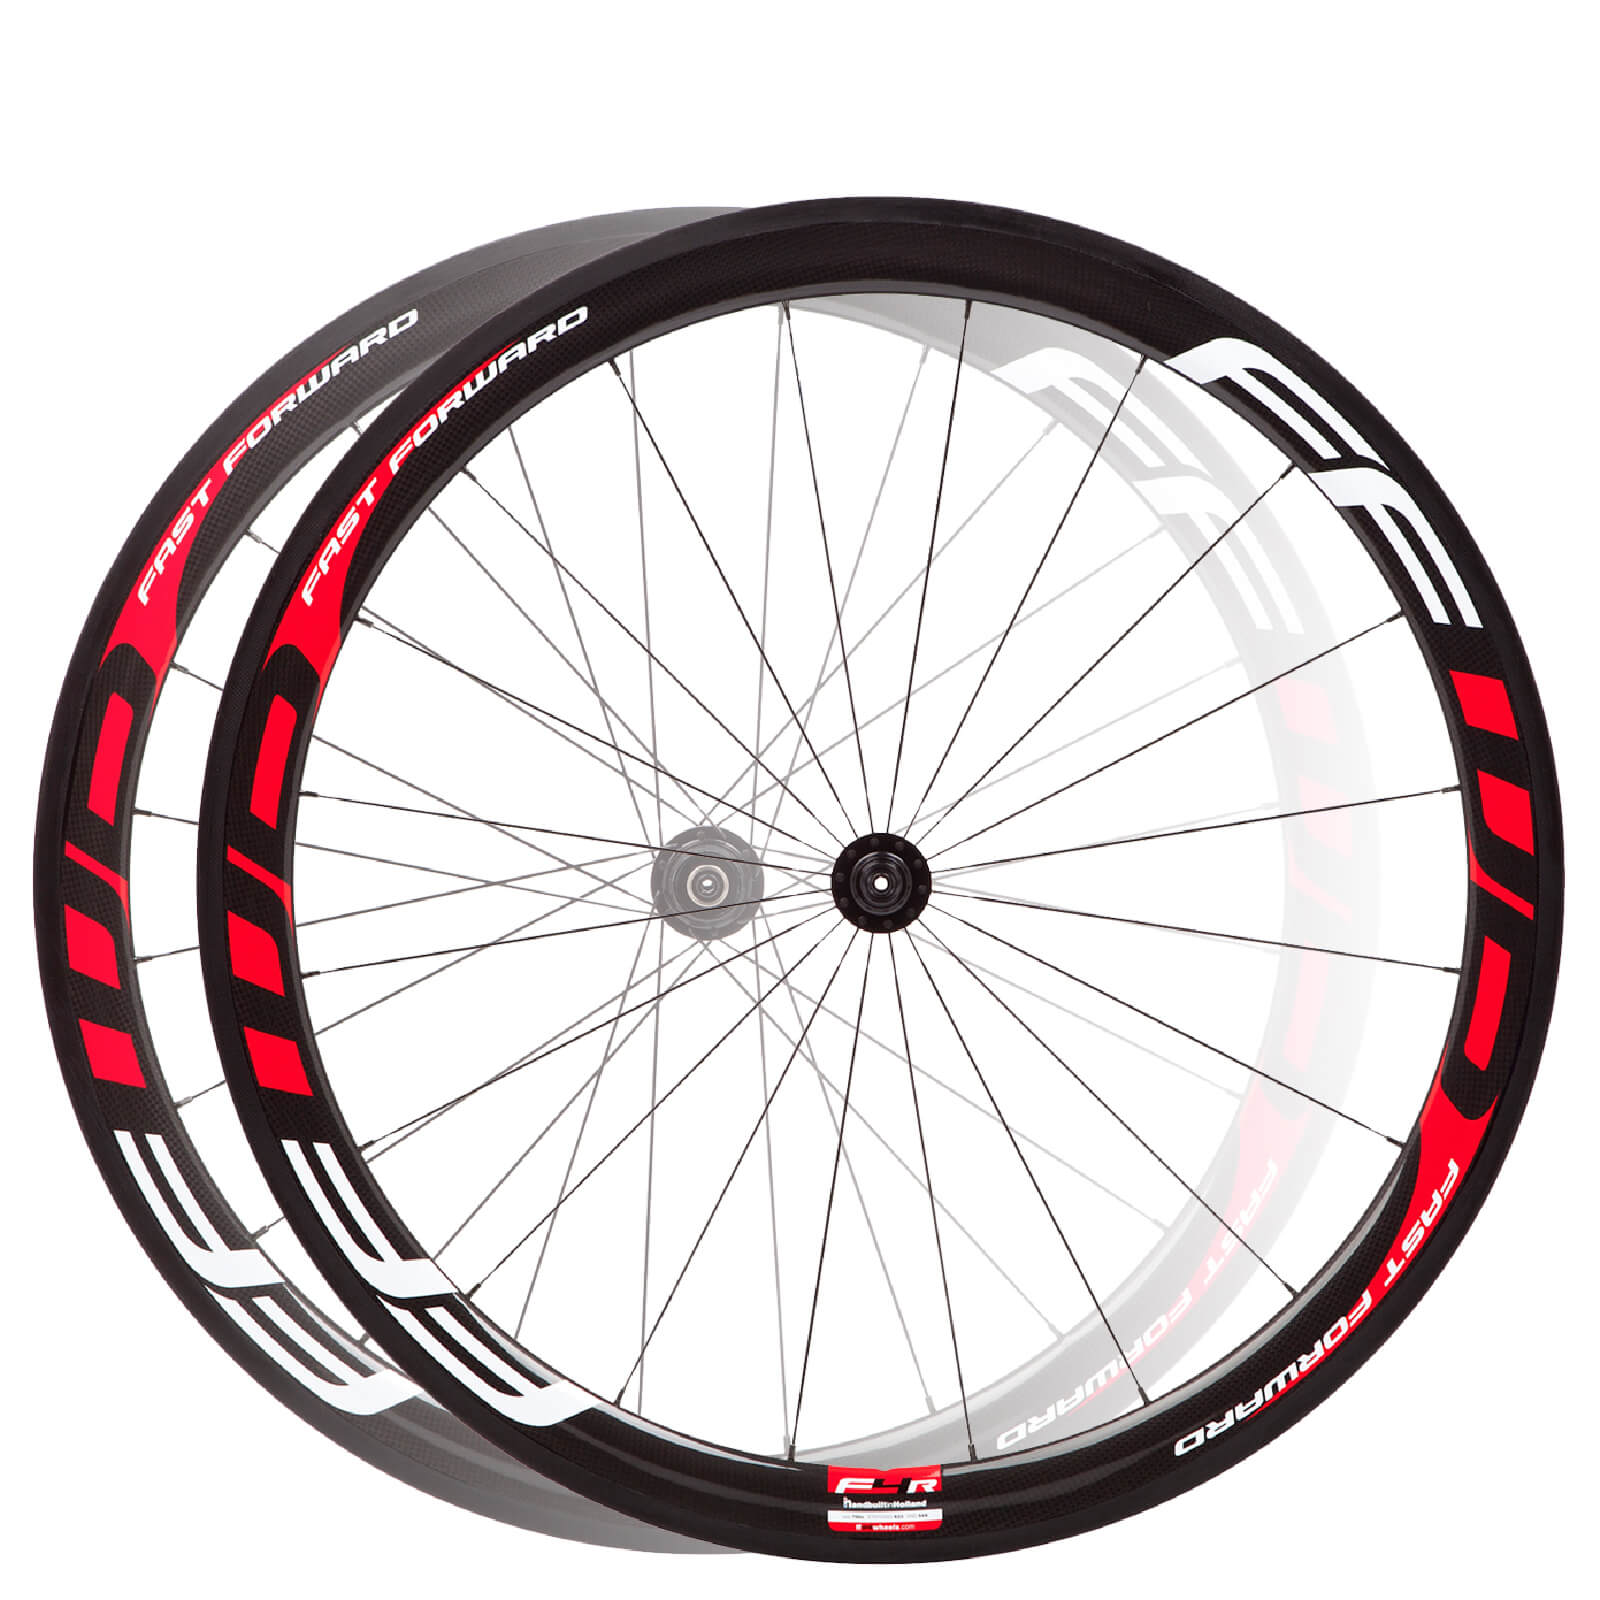 Fast Forward F4R Carbon Tubular Wheelset